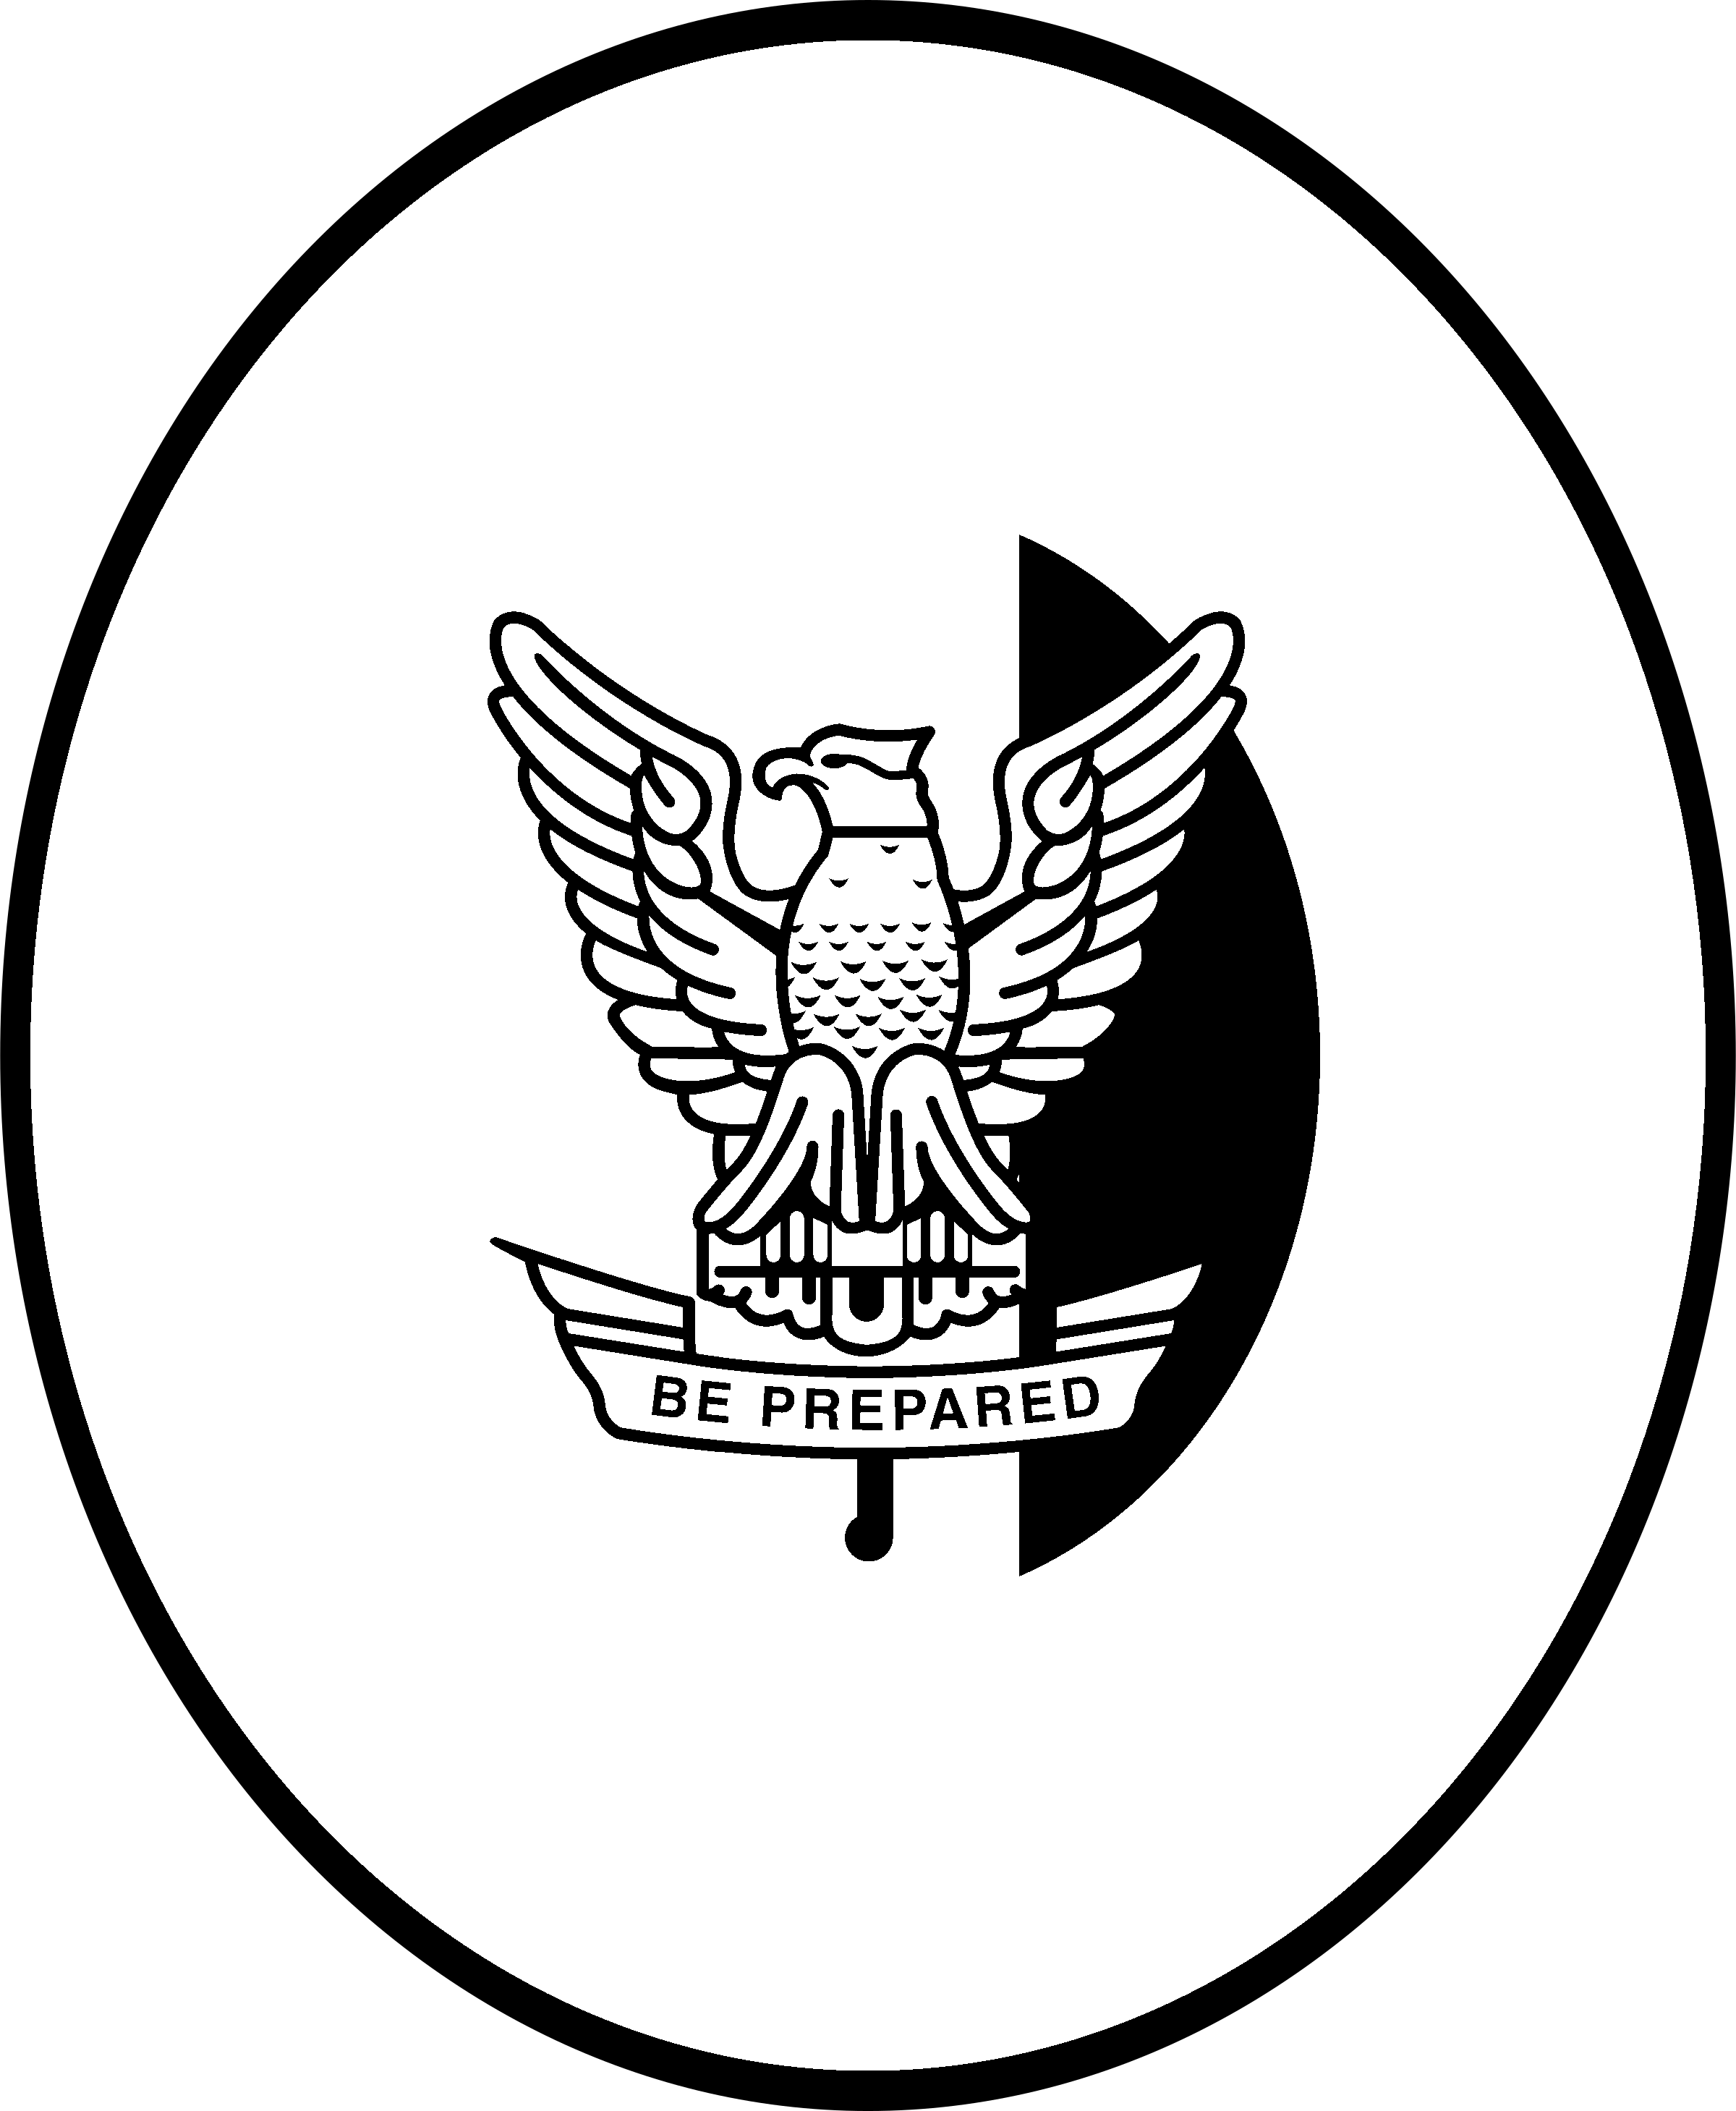 eagle scout png black and white free eagle scout black